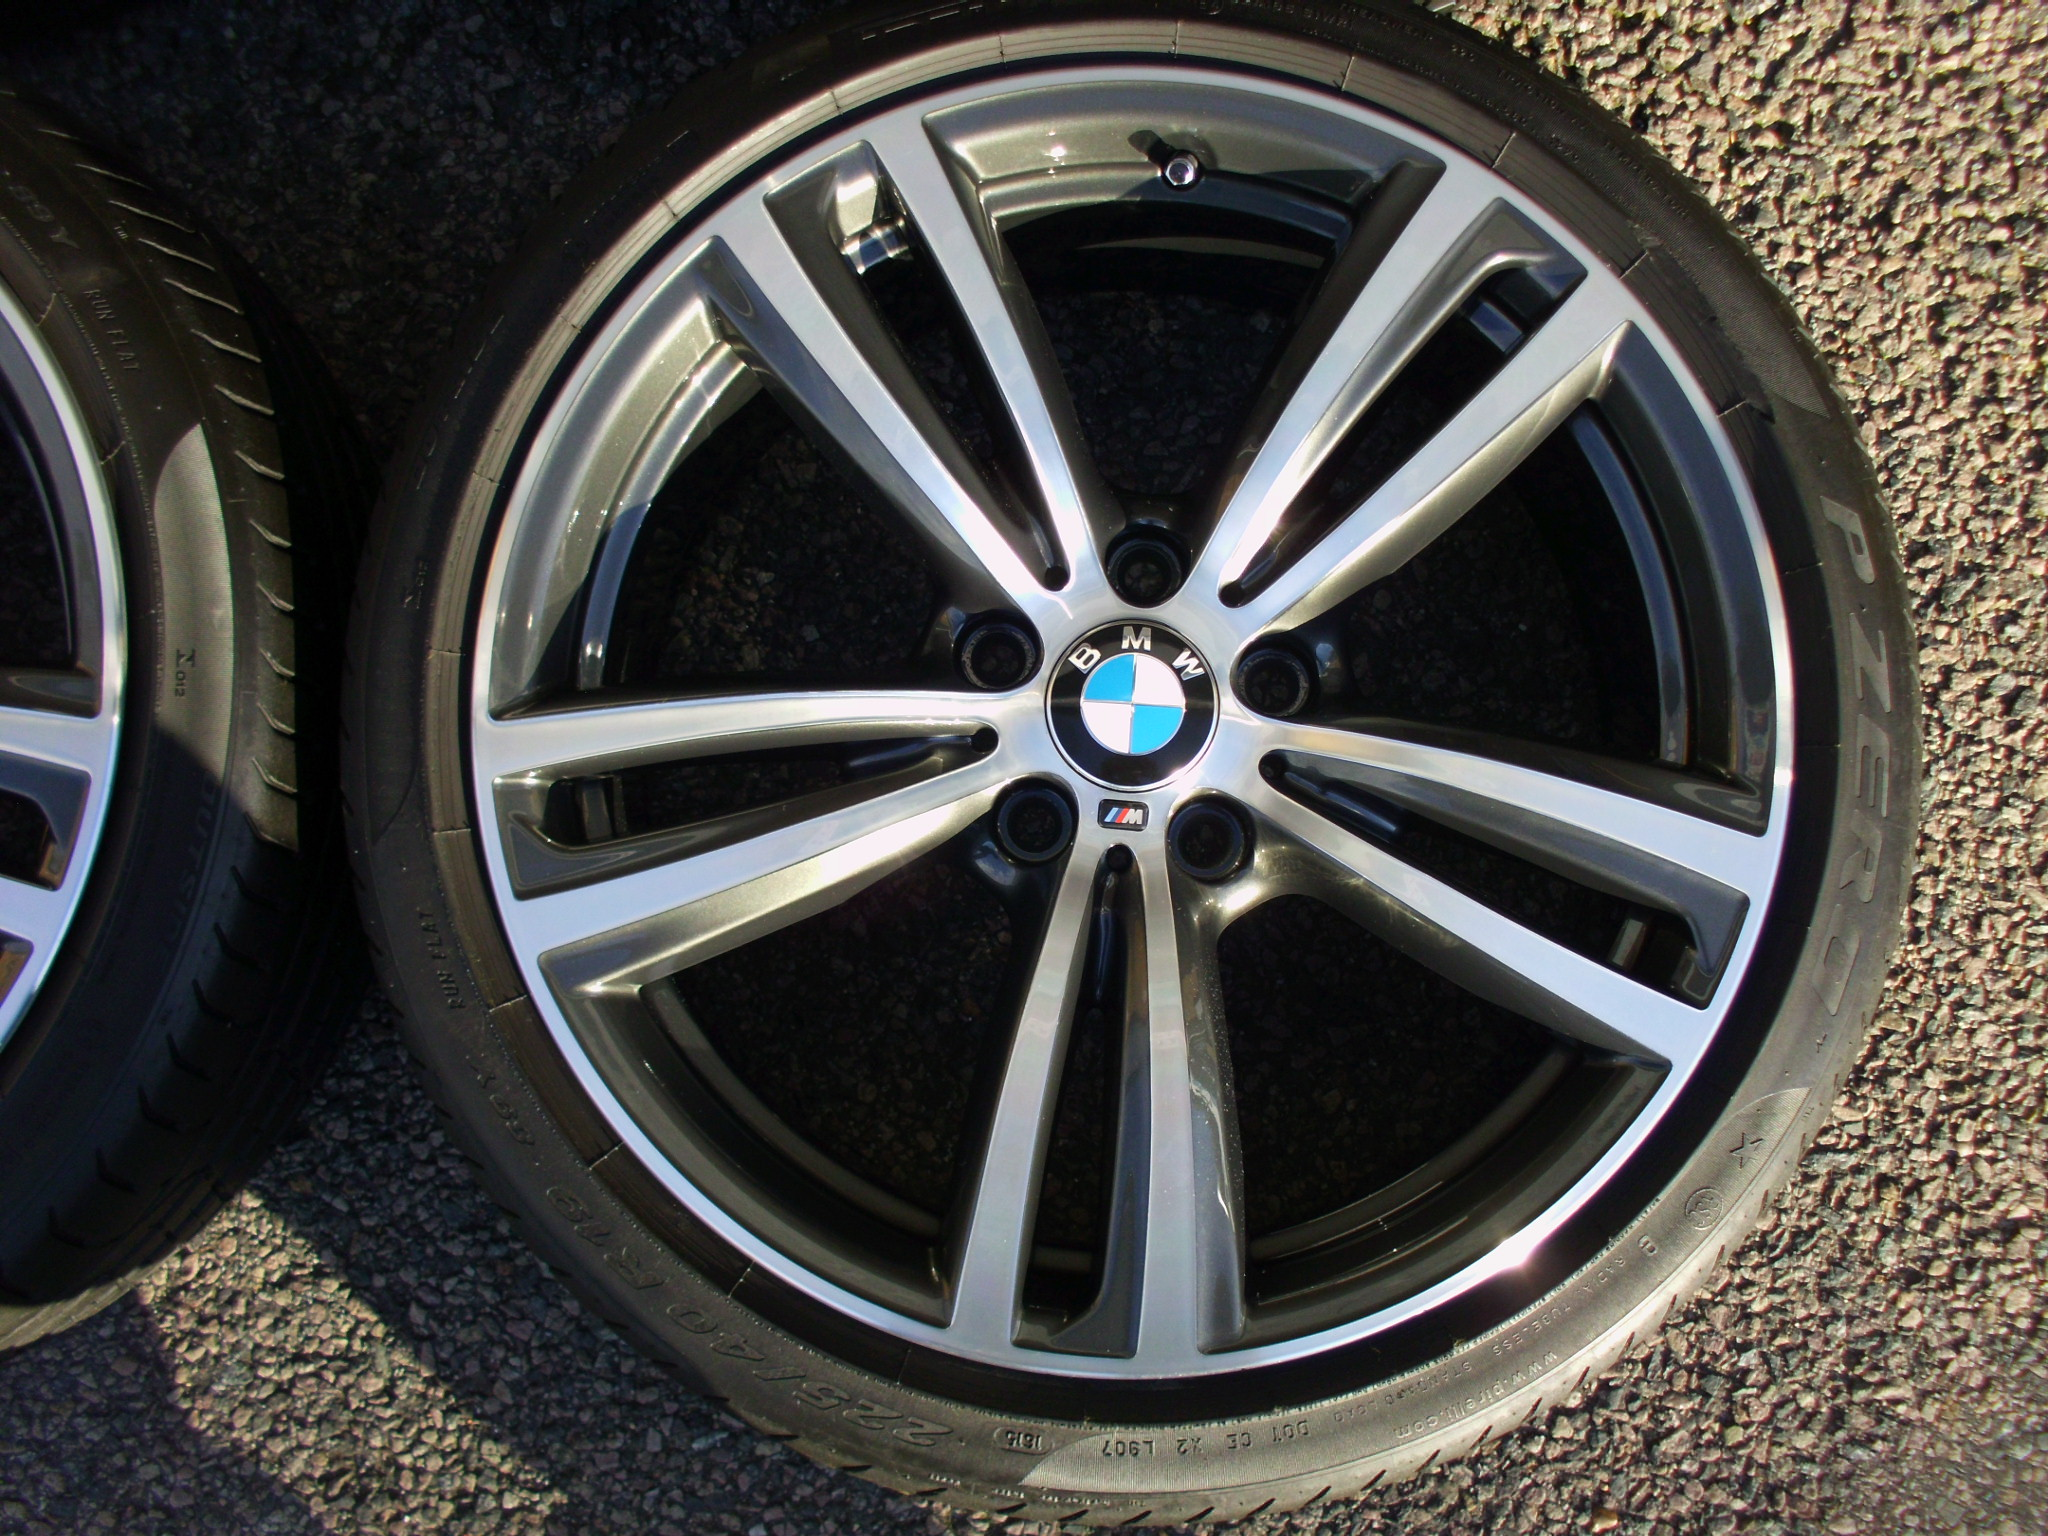 "USED 19"" GENUINE BMW STYLE 442 F30/31 M DOUBLE 5 SPOKE ALLOY WHEELS, FULLY REFURB INC VERY GOOD PIRELLI RUNFLATS"